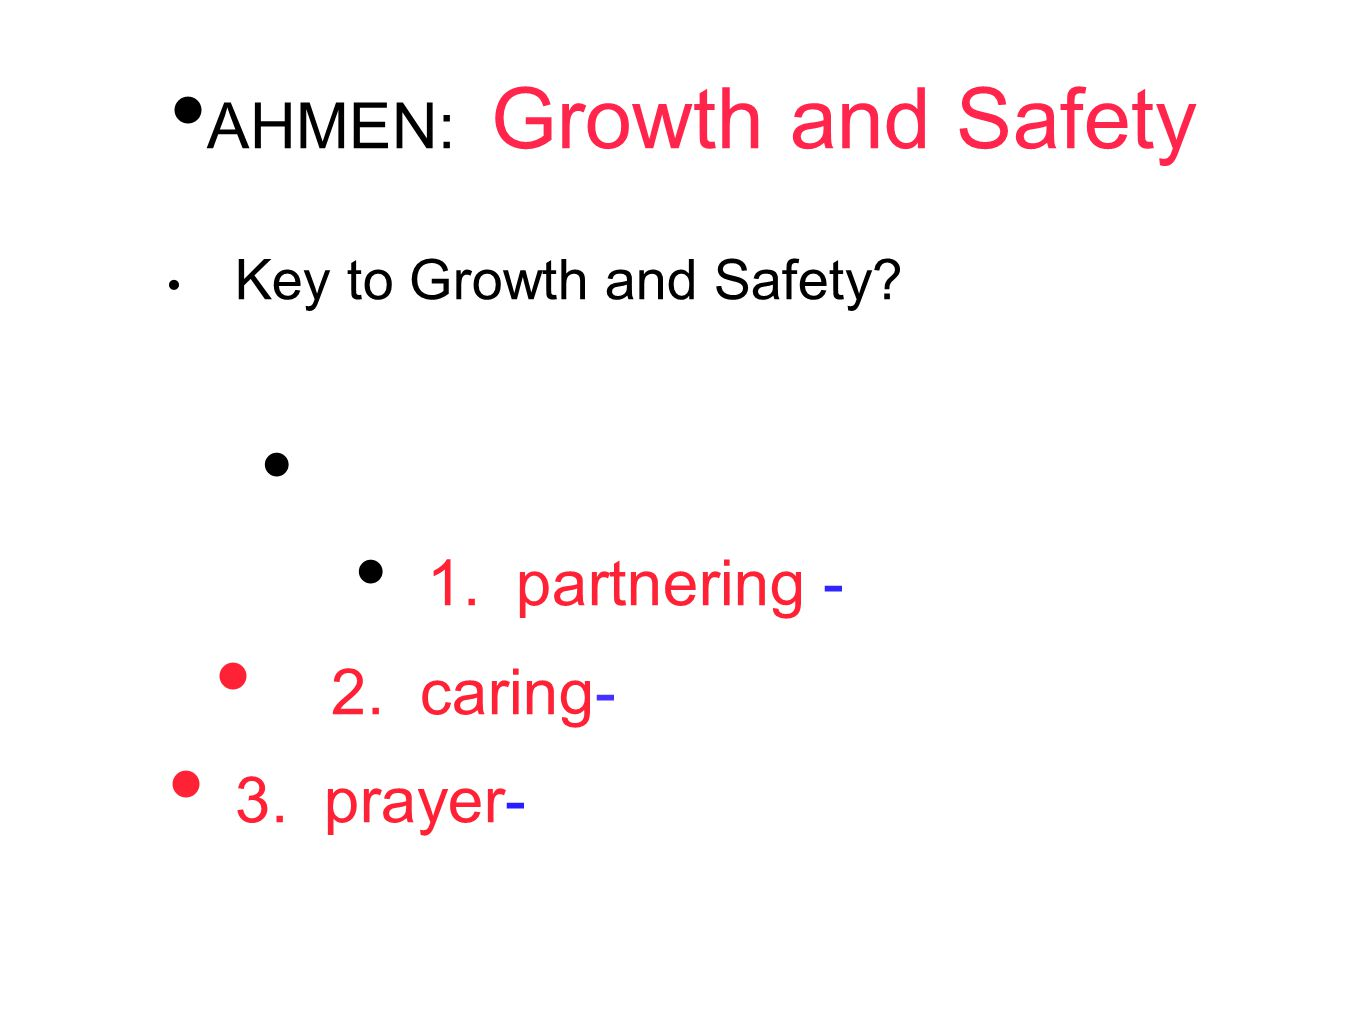 AHMEN: Growth and Safety Key to Growth and Safety? 1. partnering - 2. caring- 3. prayer-